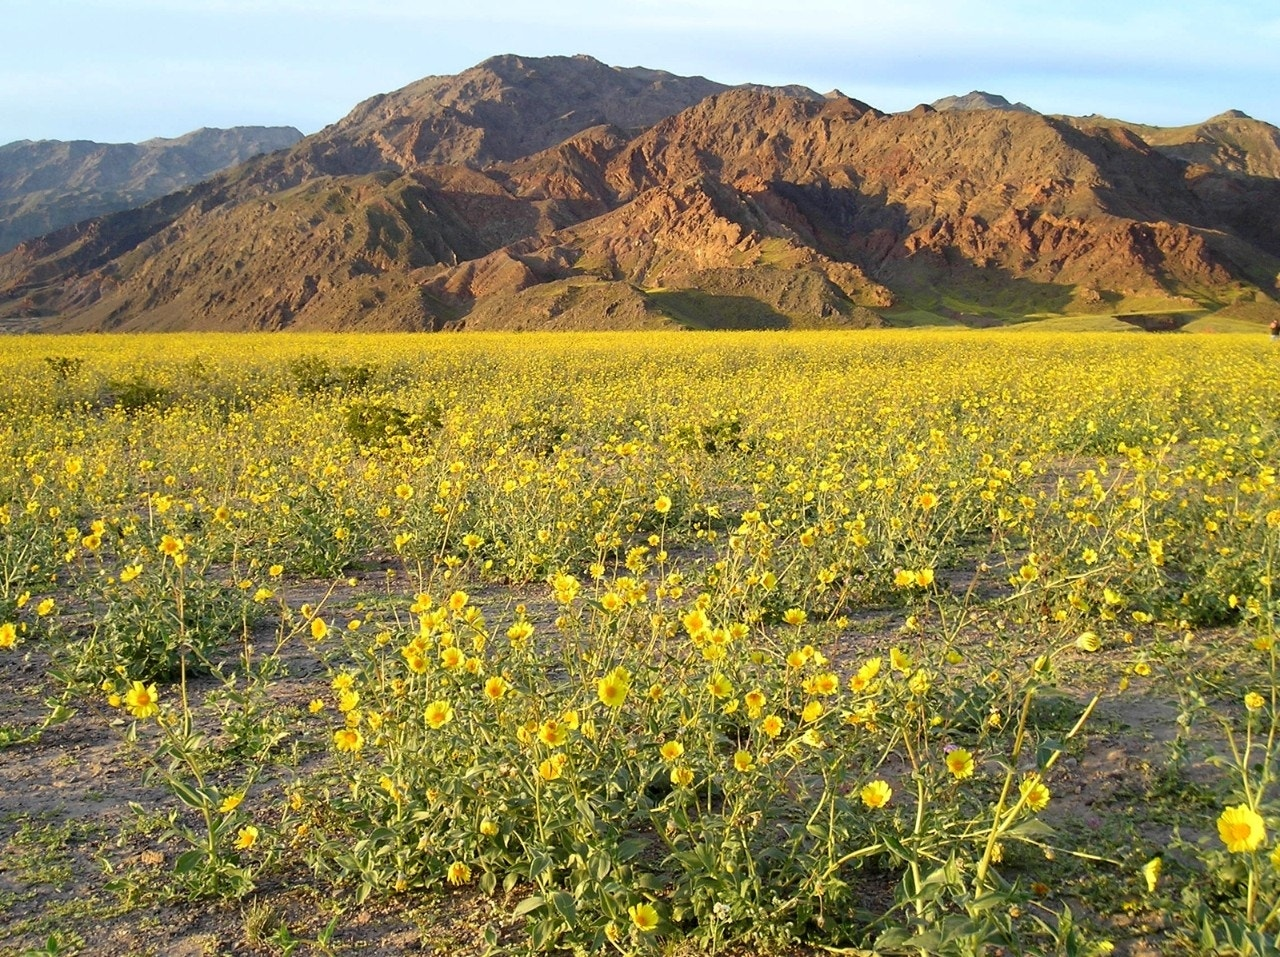 Death Valley may be about to enjoy a rare wildflower super bloom